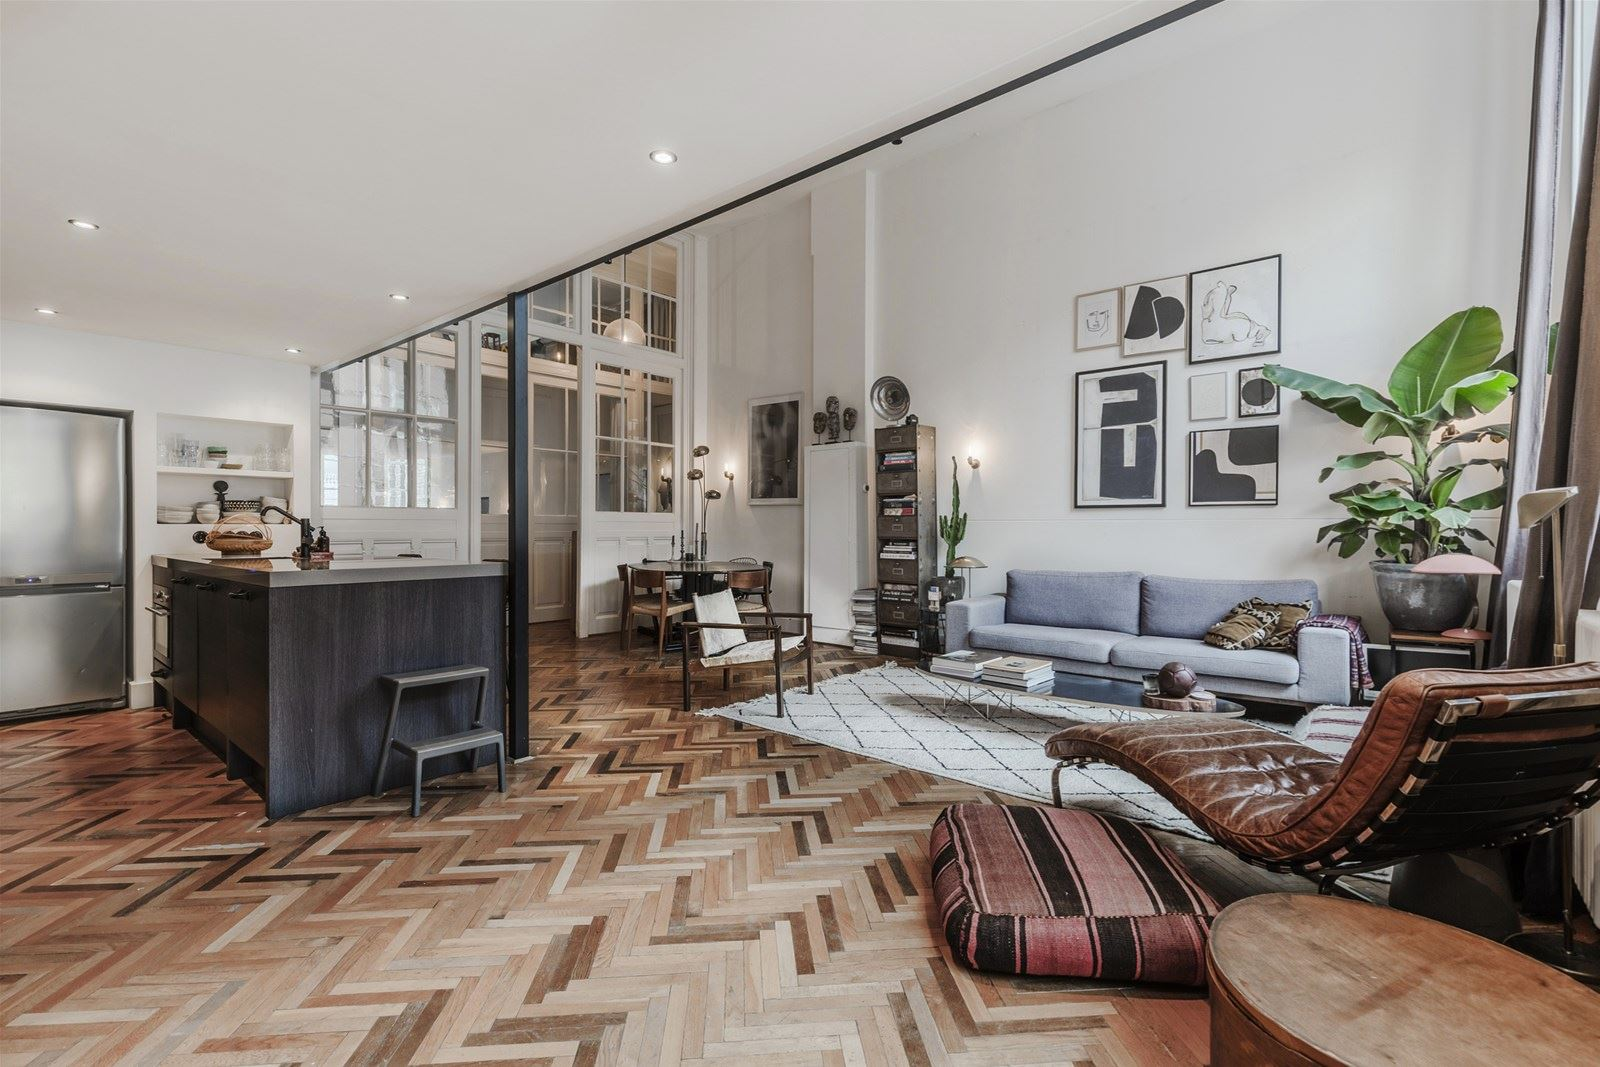 The Nordroom - Industrial Loft Apartment on a Canal Street in Amsterdam